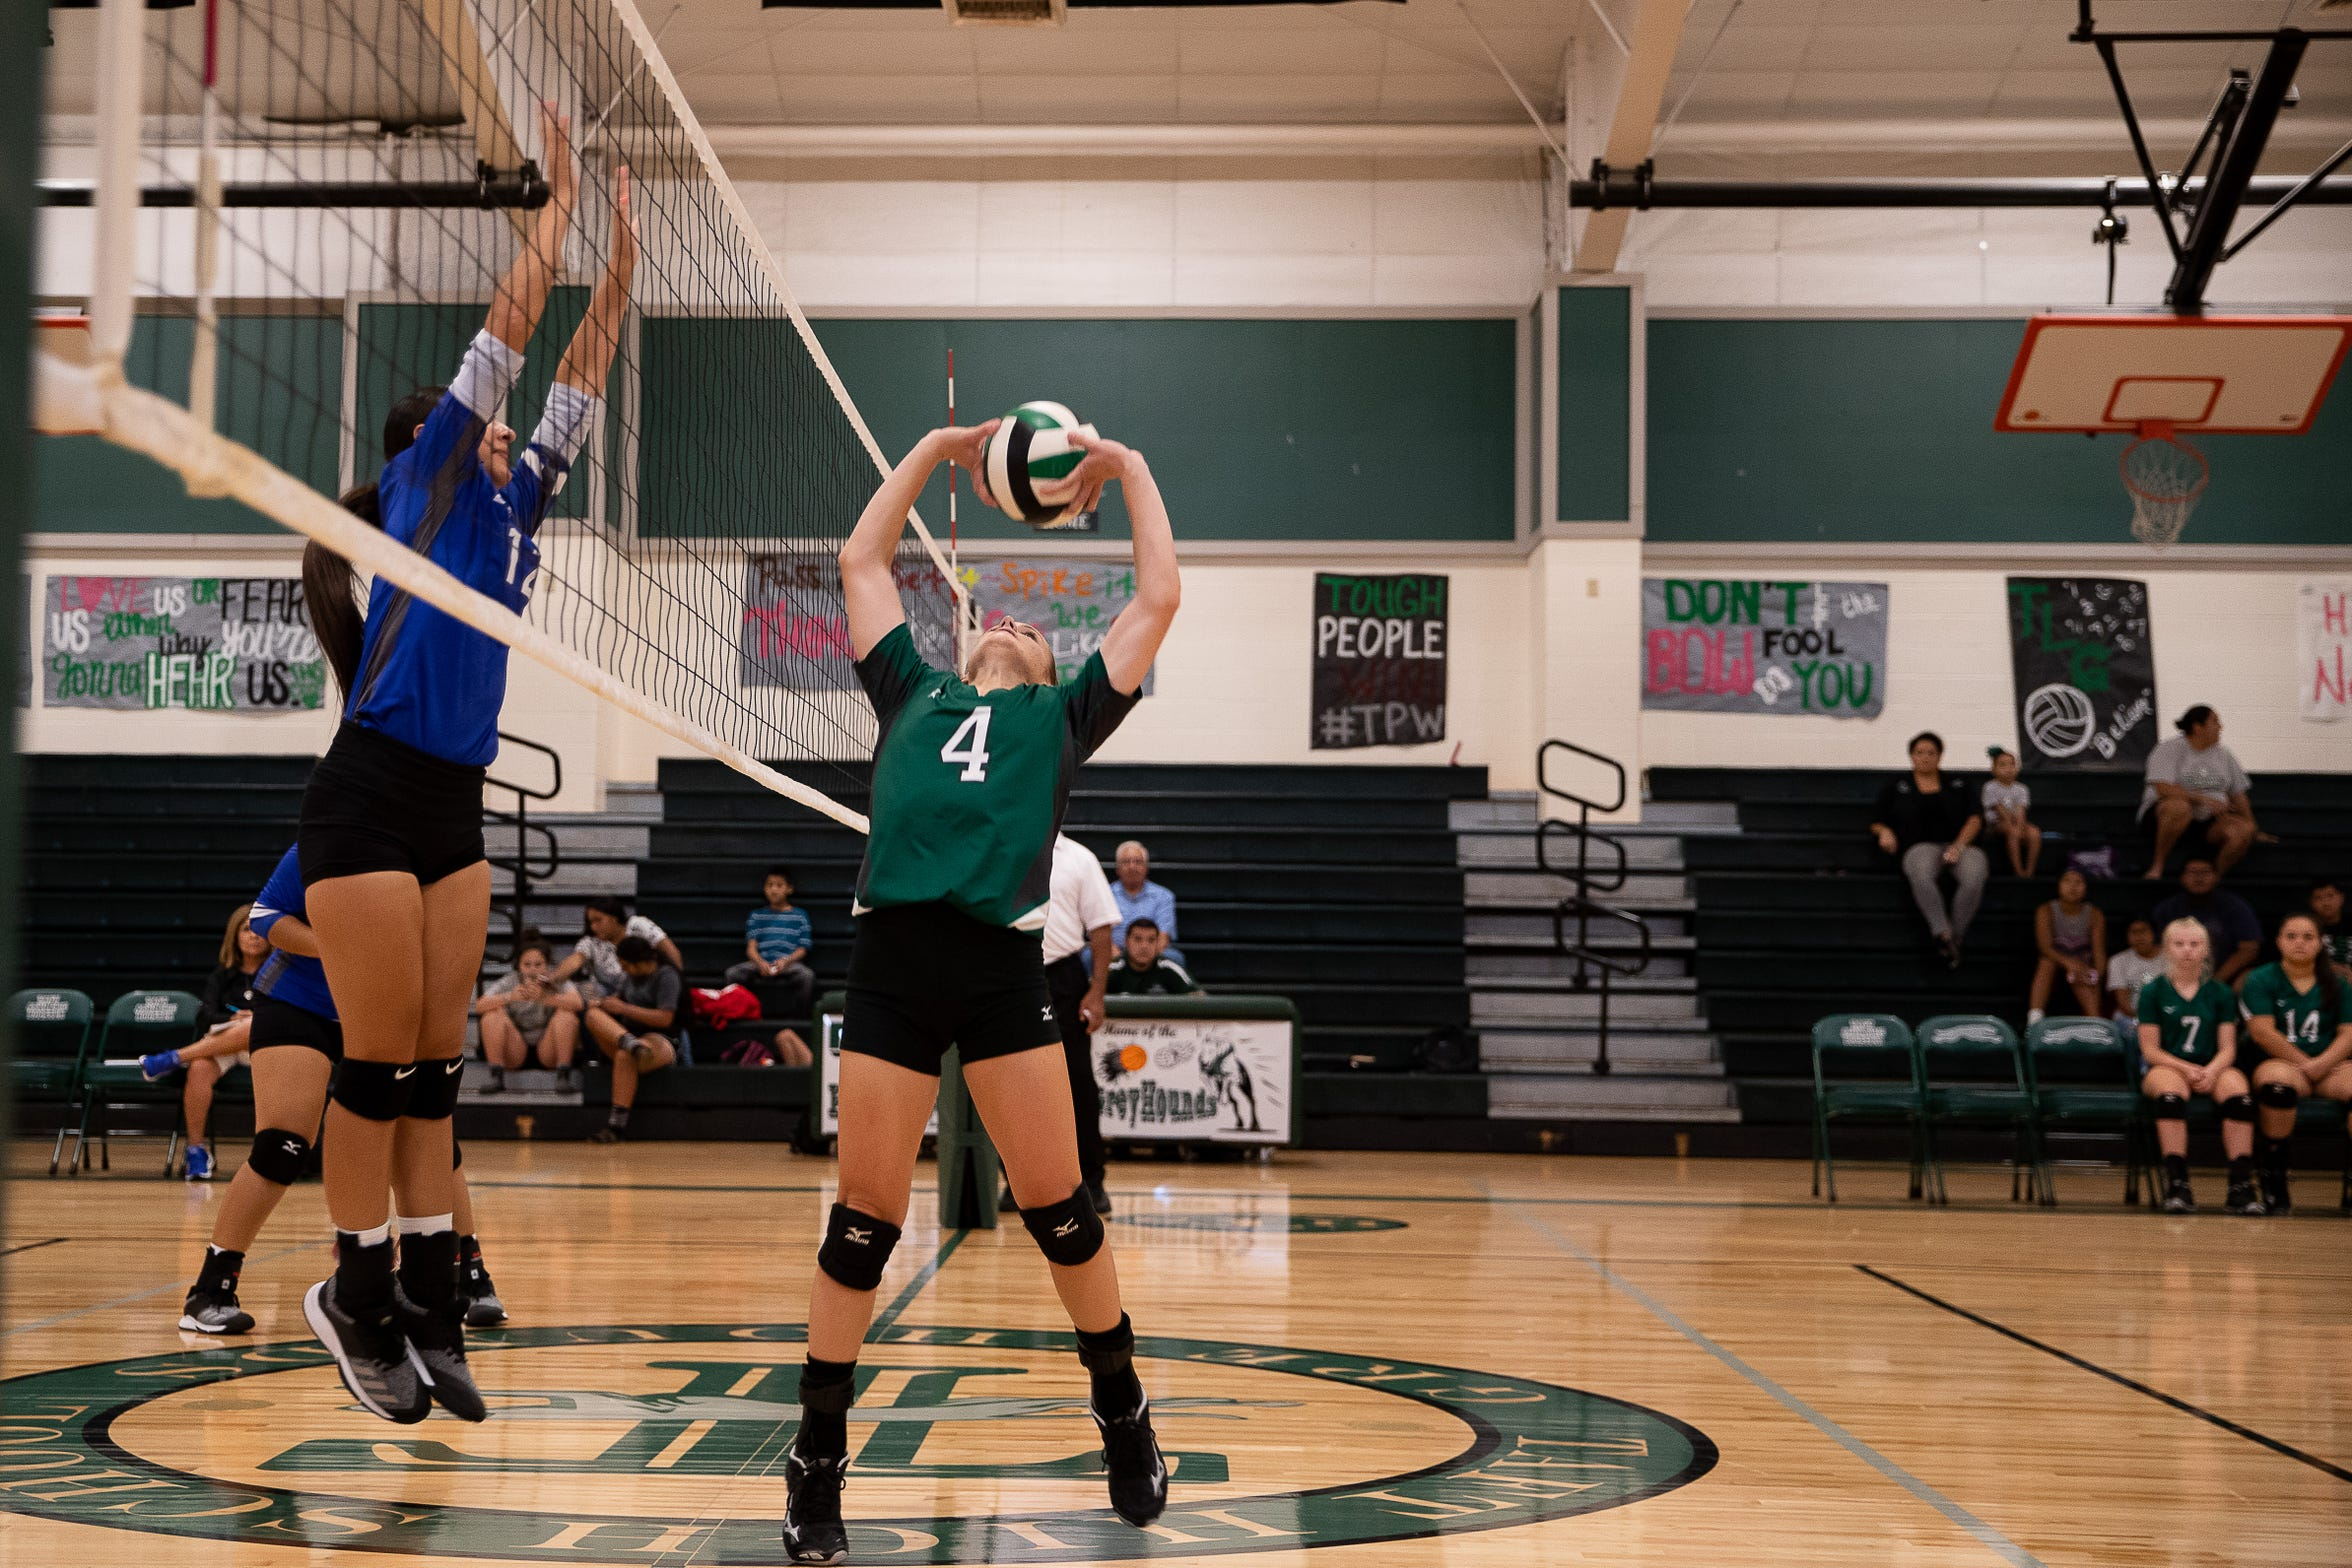 Taft's Kelly Graves sets the ball during a game in their newly rebuilt gymnasium on Thursday, Aug. 23, 2018. Their  gym was heavily damaged during Hurricane Harvey and have played and practiced on the road in 2017.